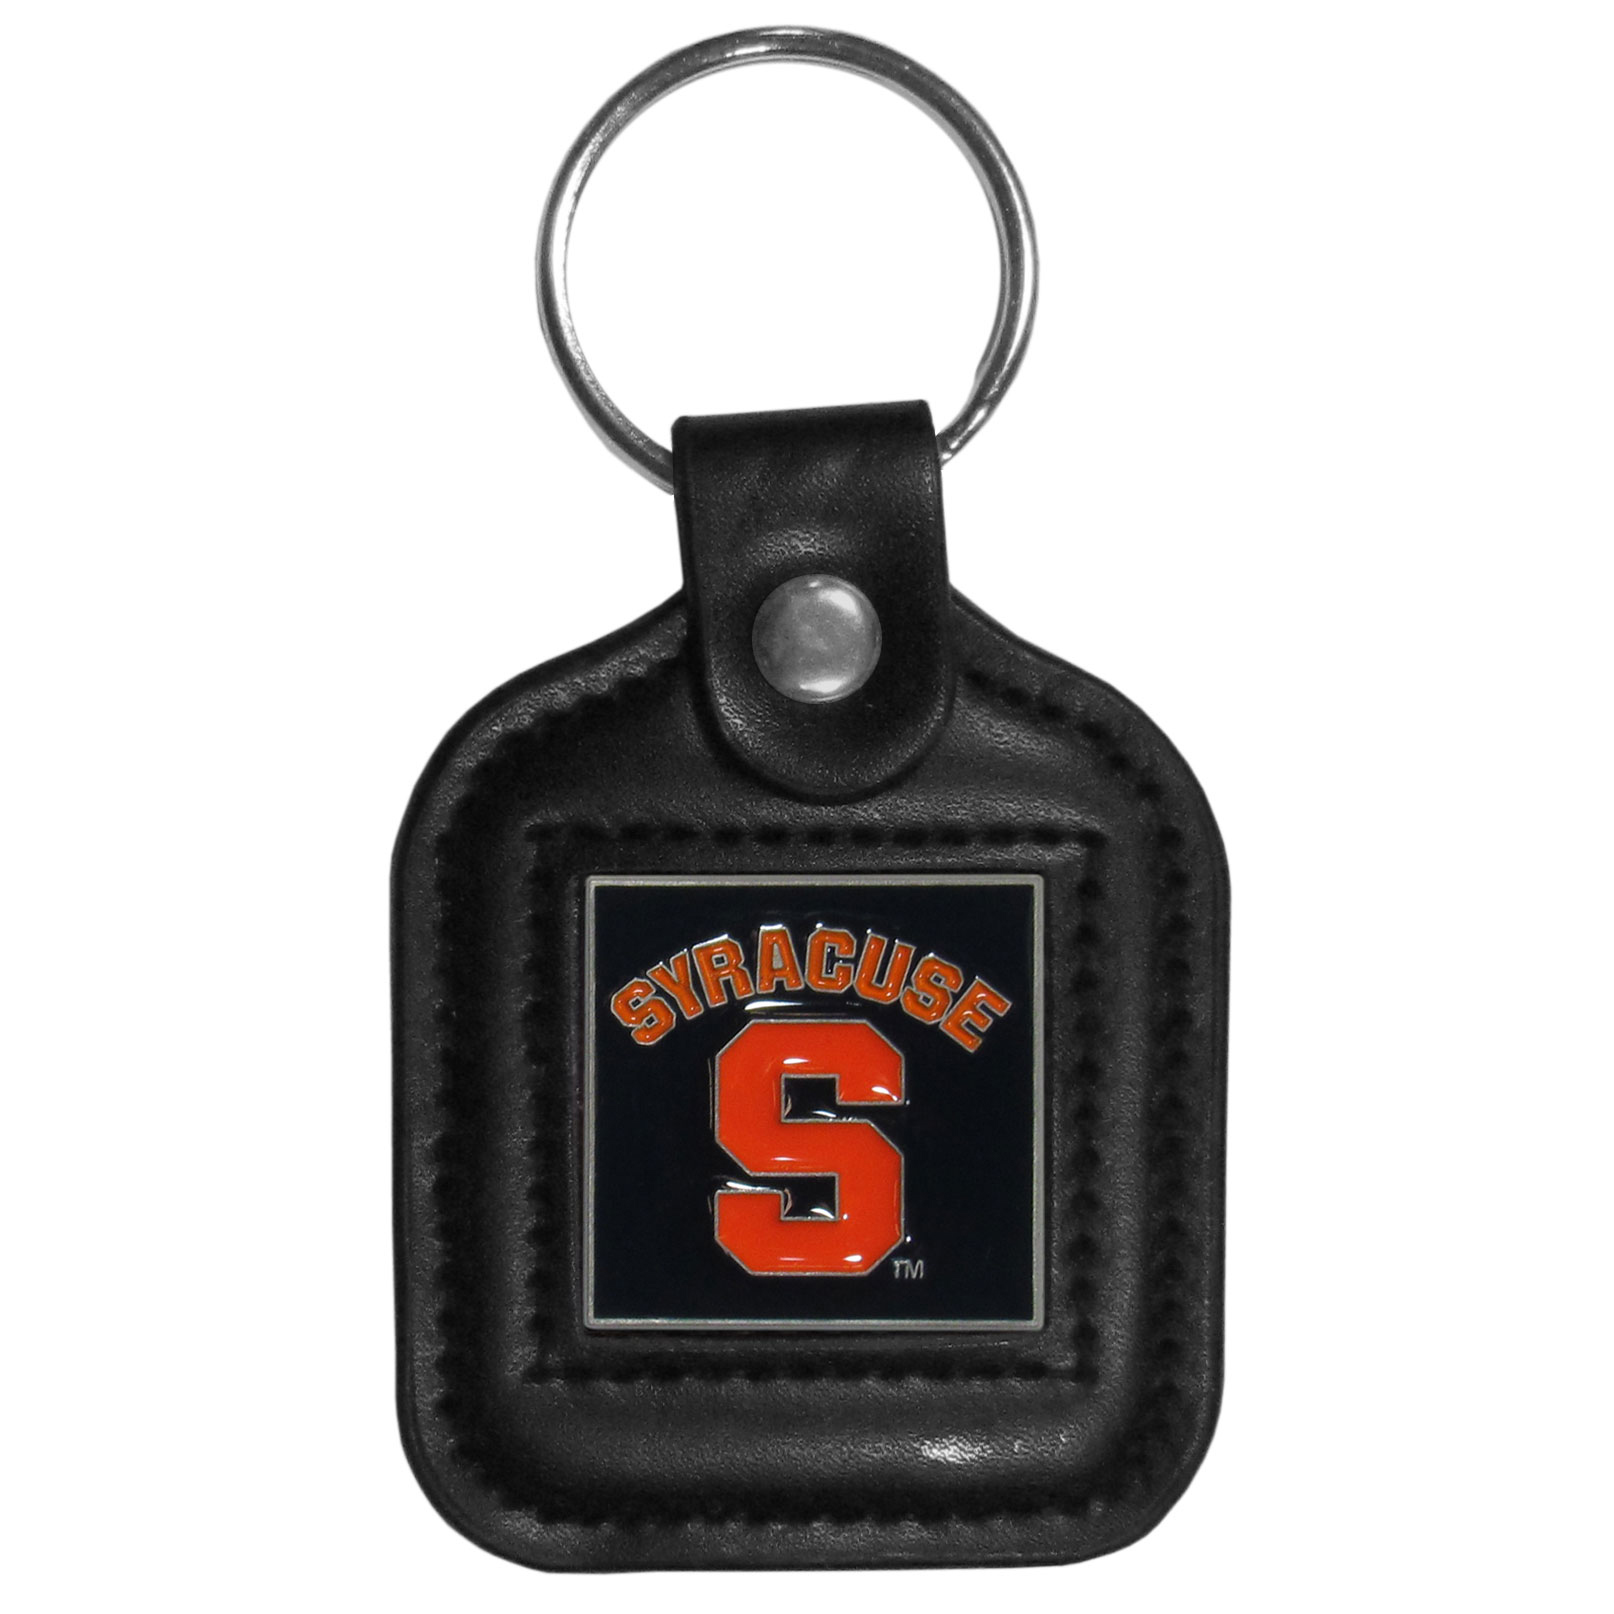 Syracuse Orange Square Leatherette Key Chain - Our Syracuse Orange black key fob with stitched detail and inlaid, metal team emblem with enameled color details.